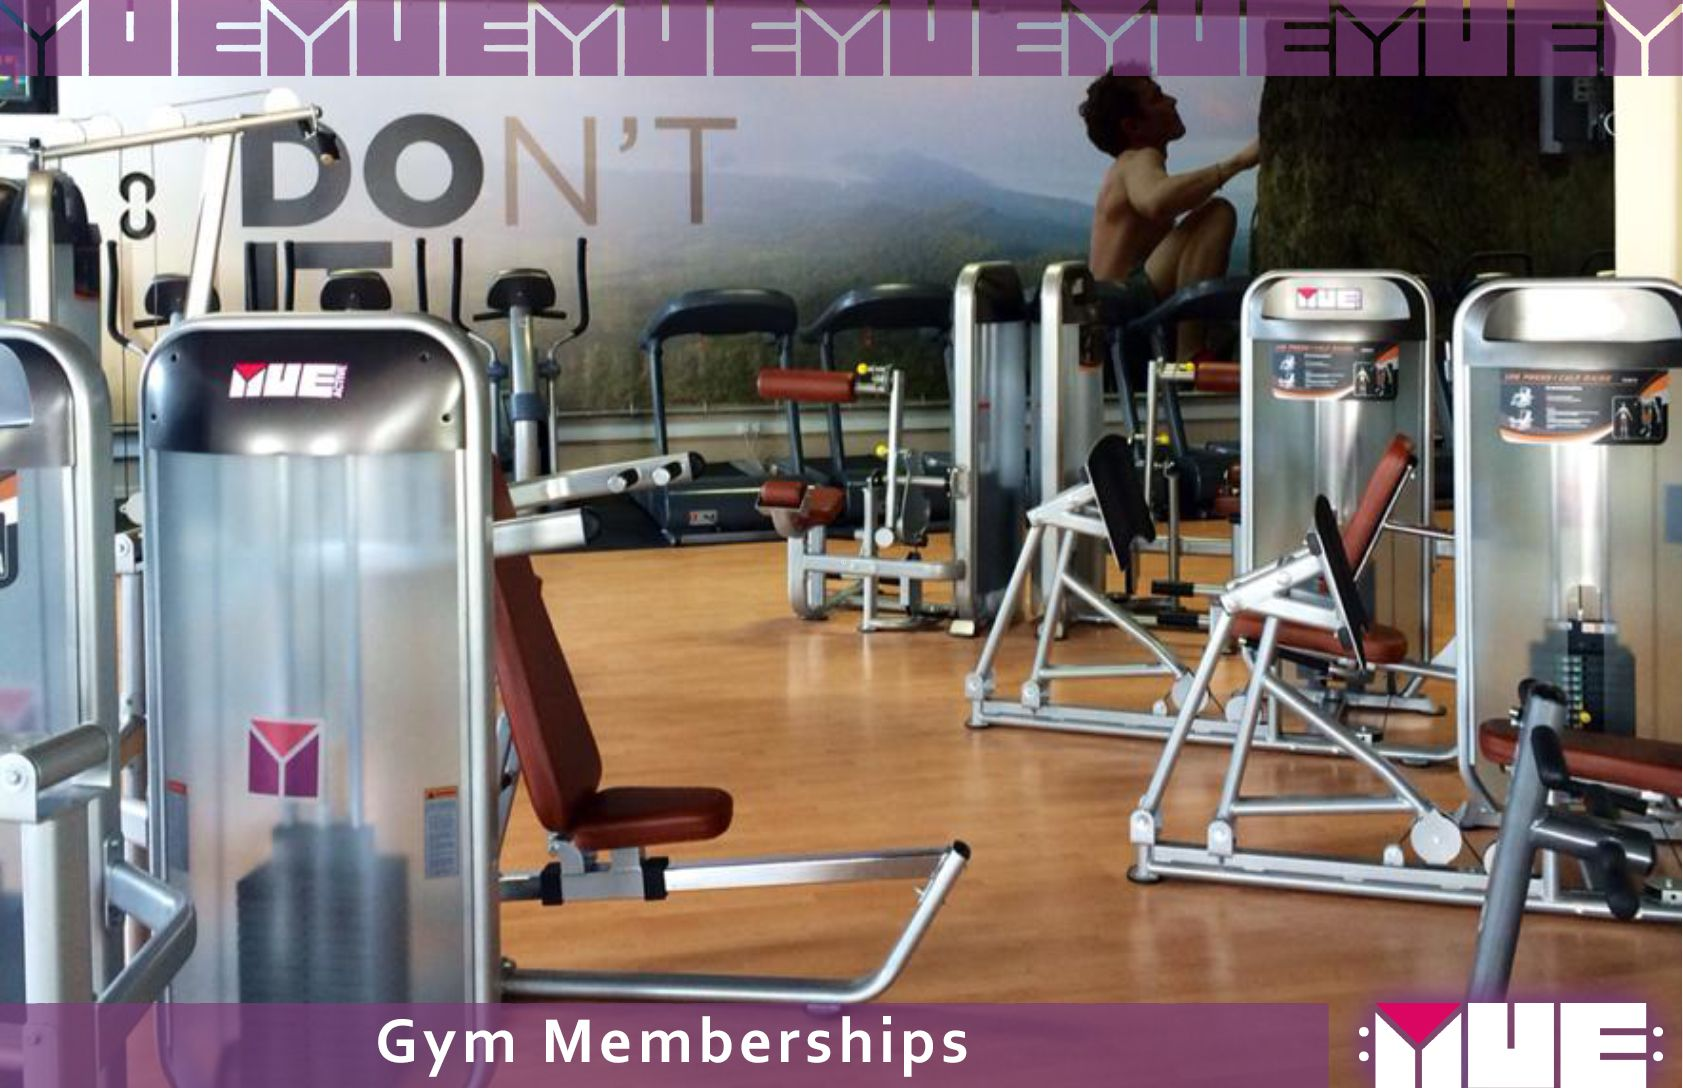 Healthy lifestyle gym membership